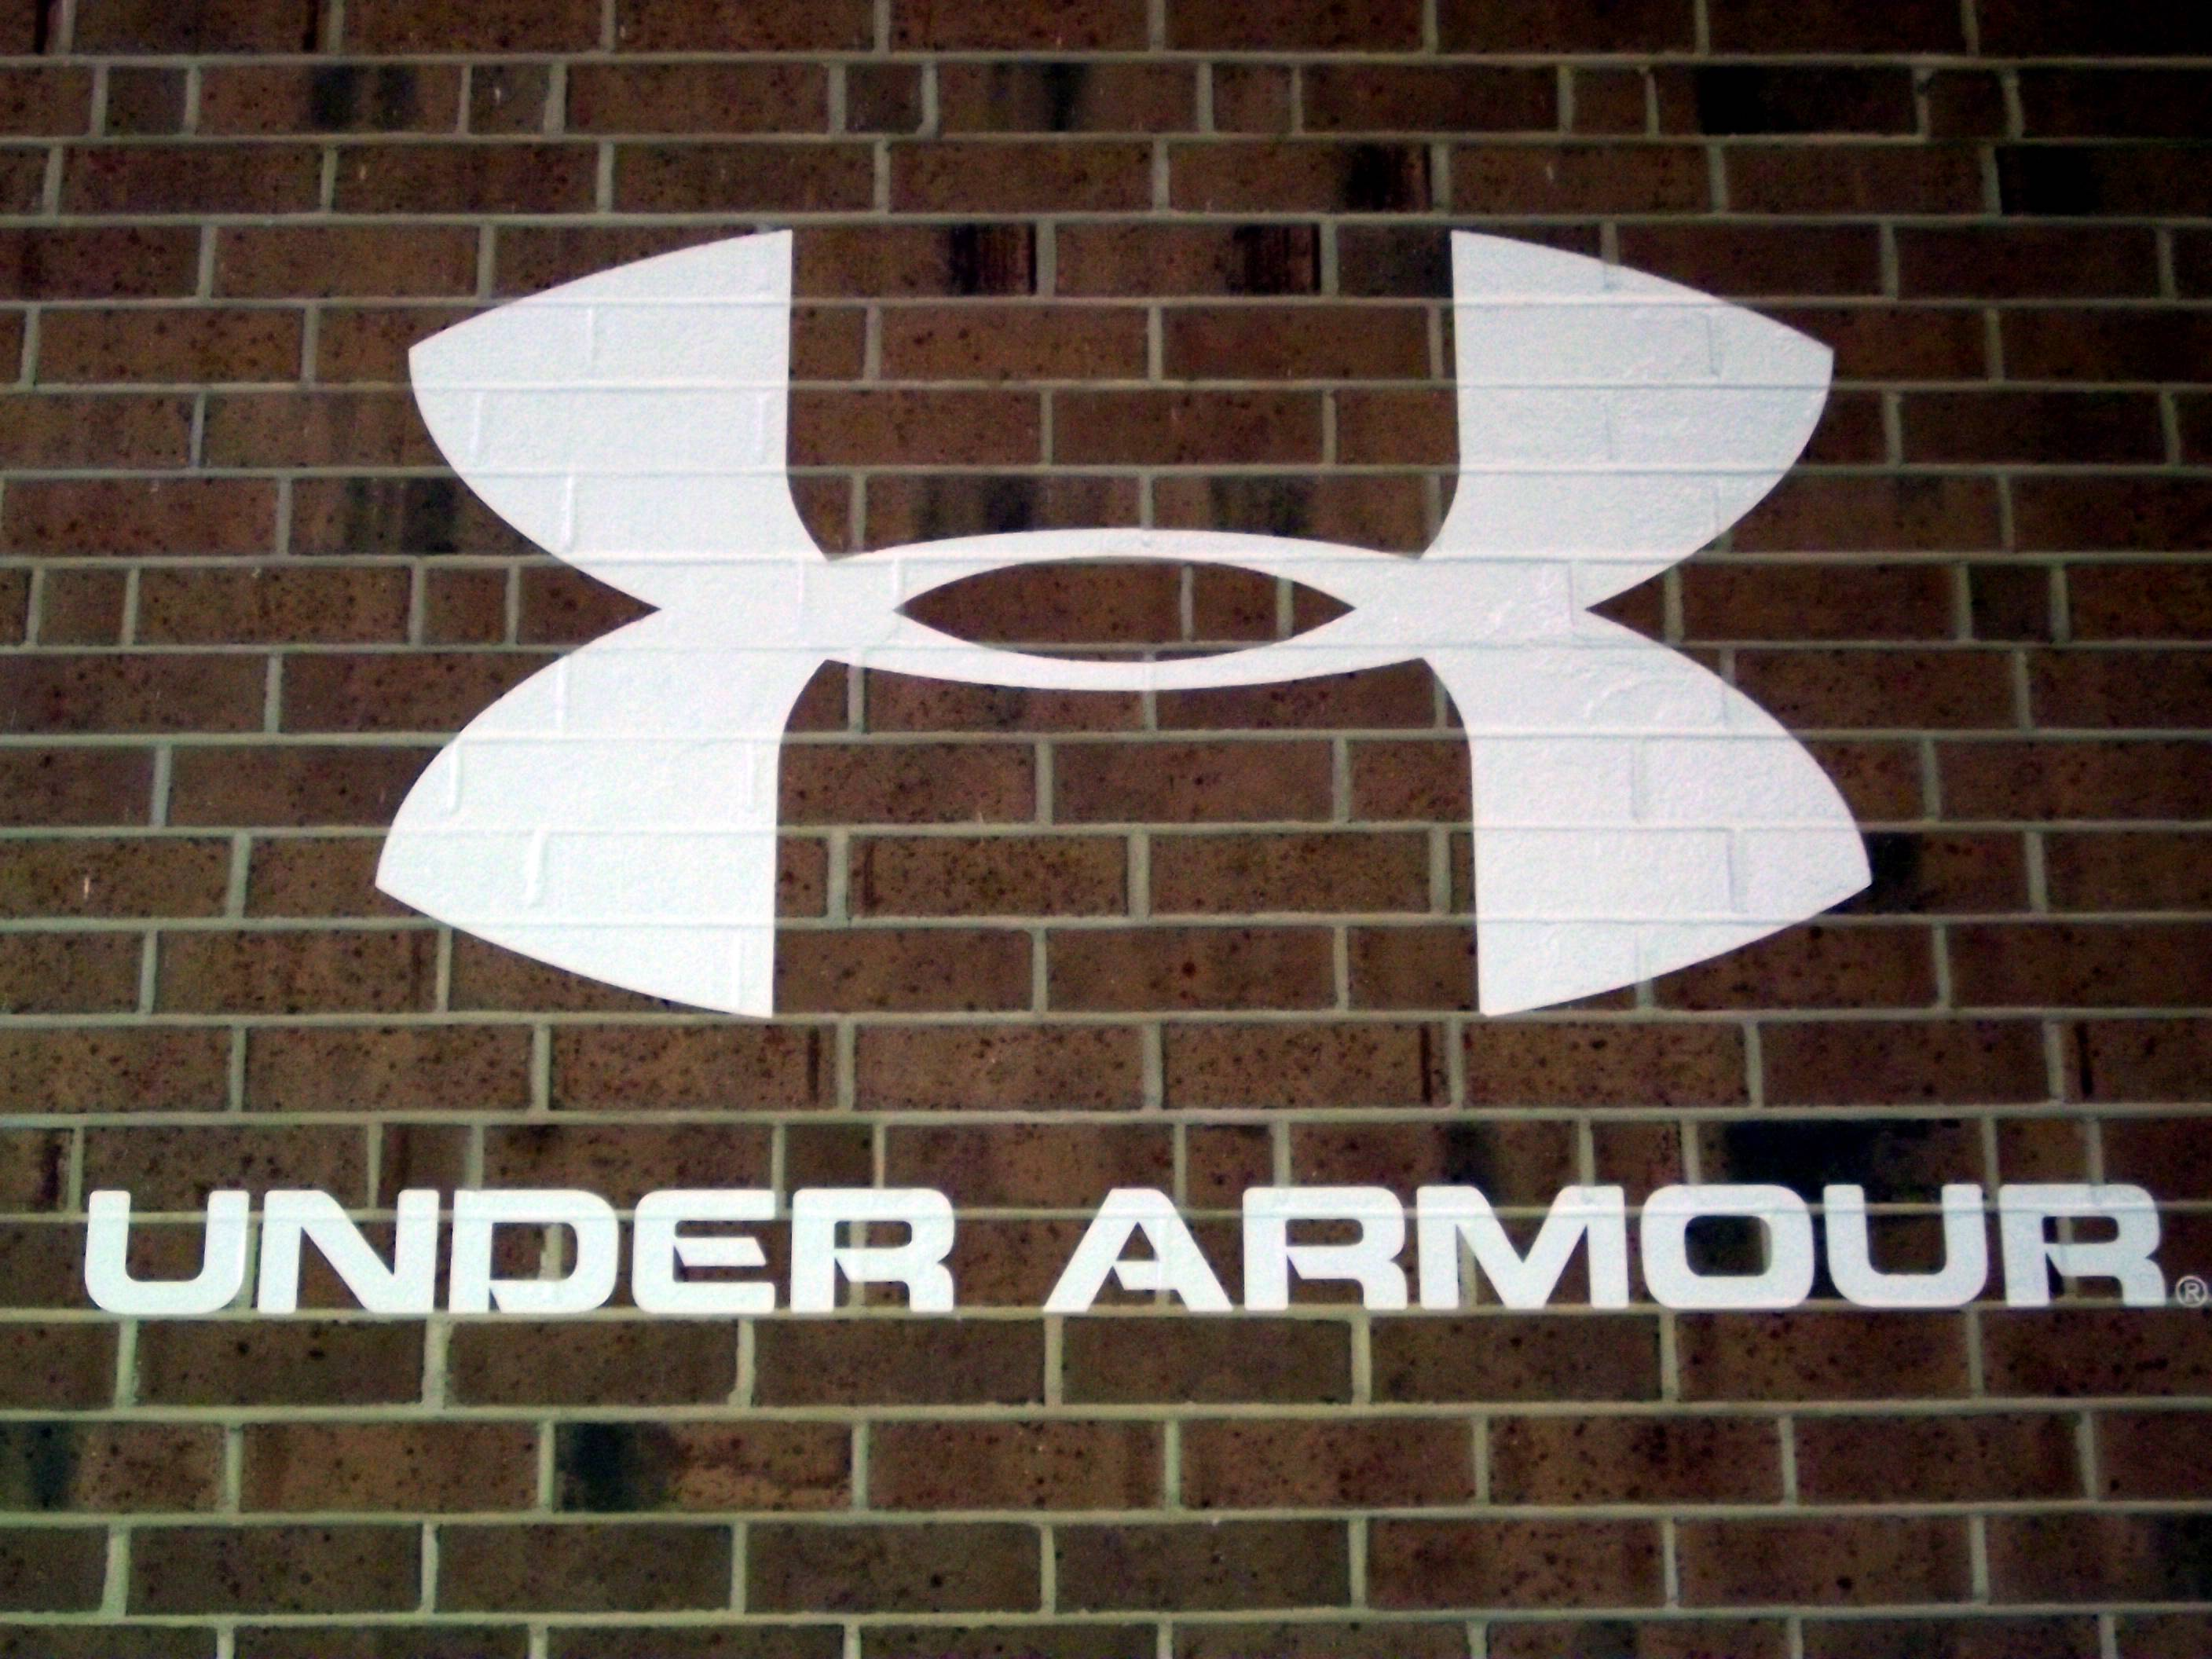 Under Armour Basketball Wallpaper The Wallpaper